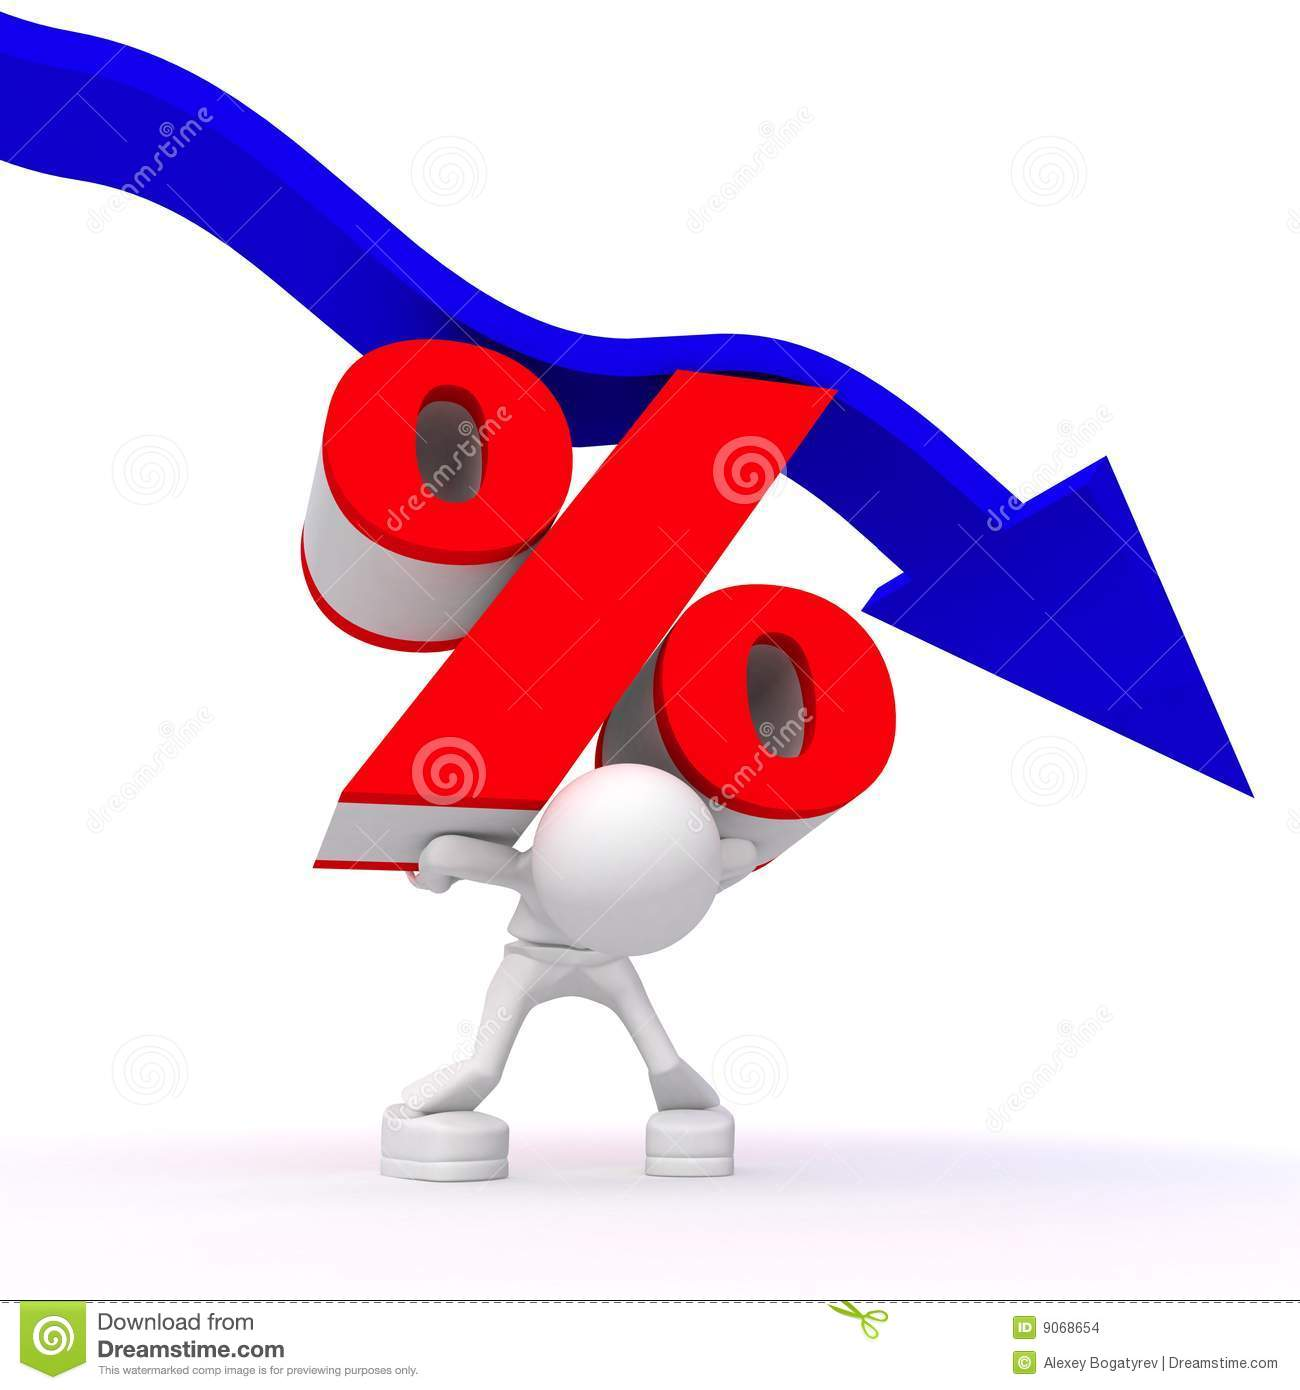 More similar stock images of ` Percentage rate decrease `